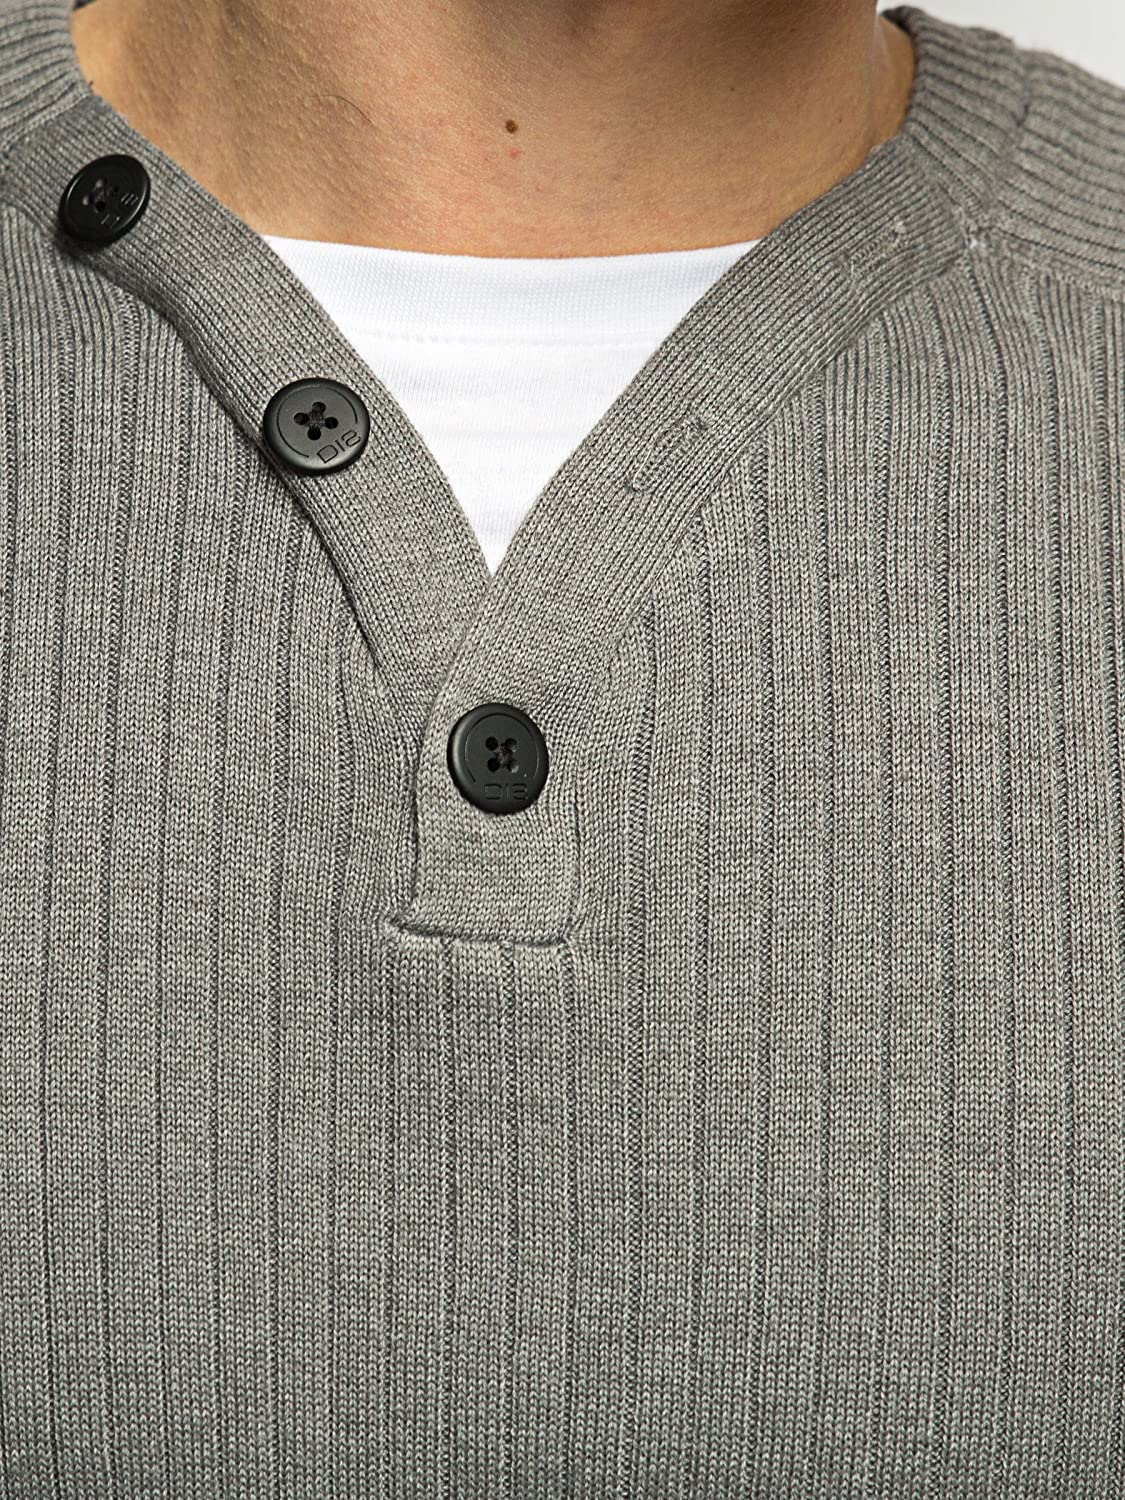 Mens Dissident Jumper | Button Front Y Neck Ribbed Sweater | Military Mens Knitwear | Size S M L XL